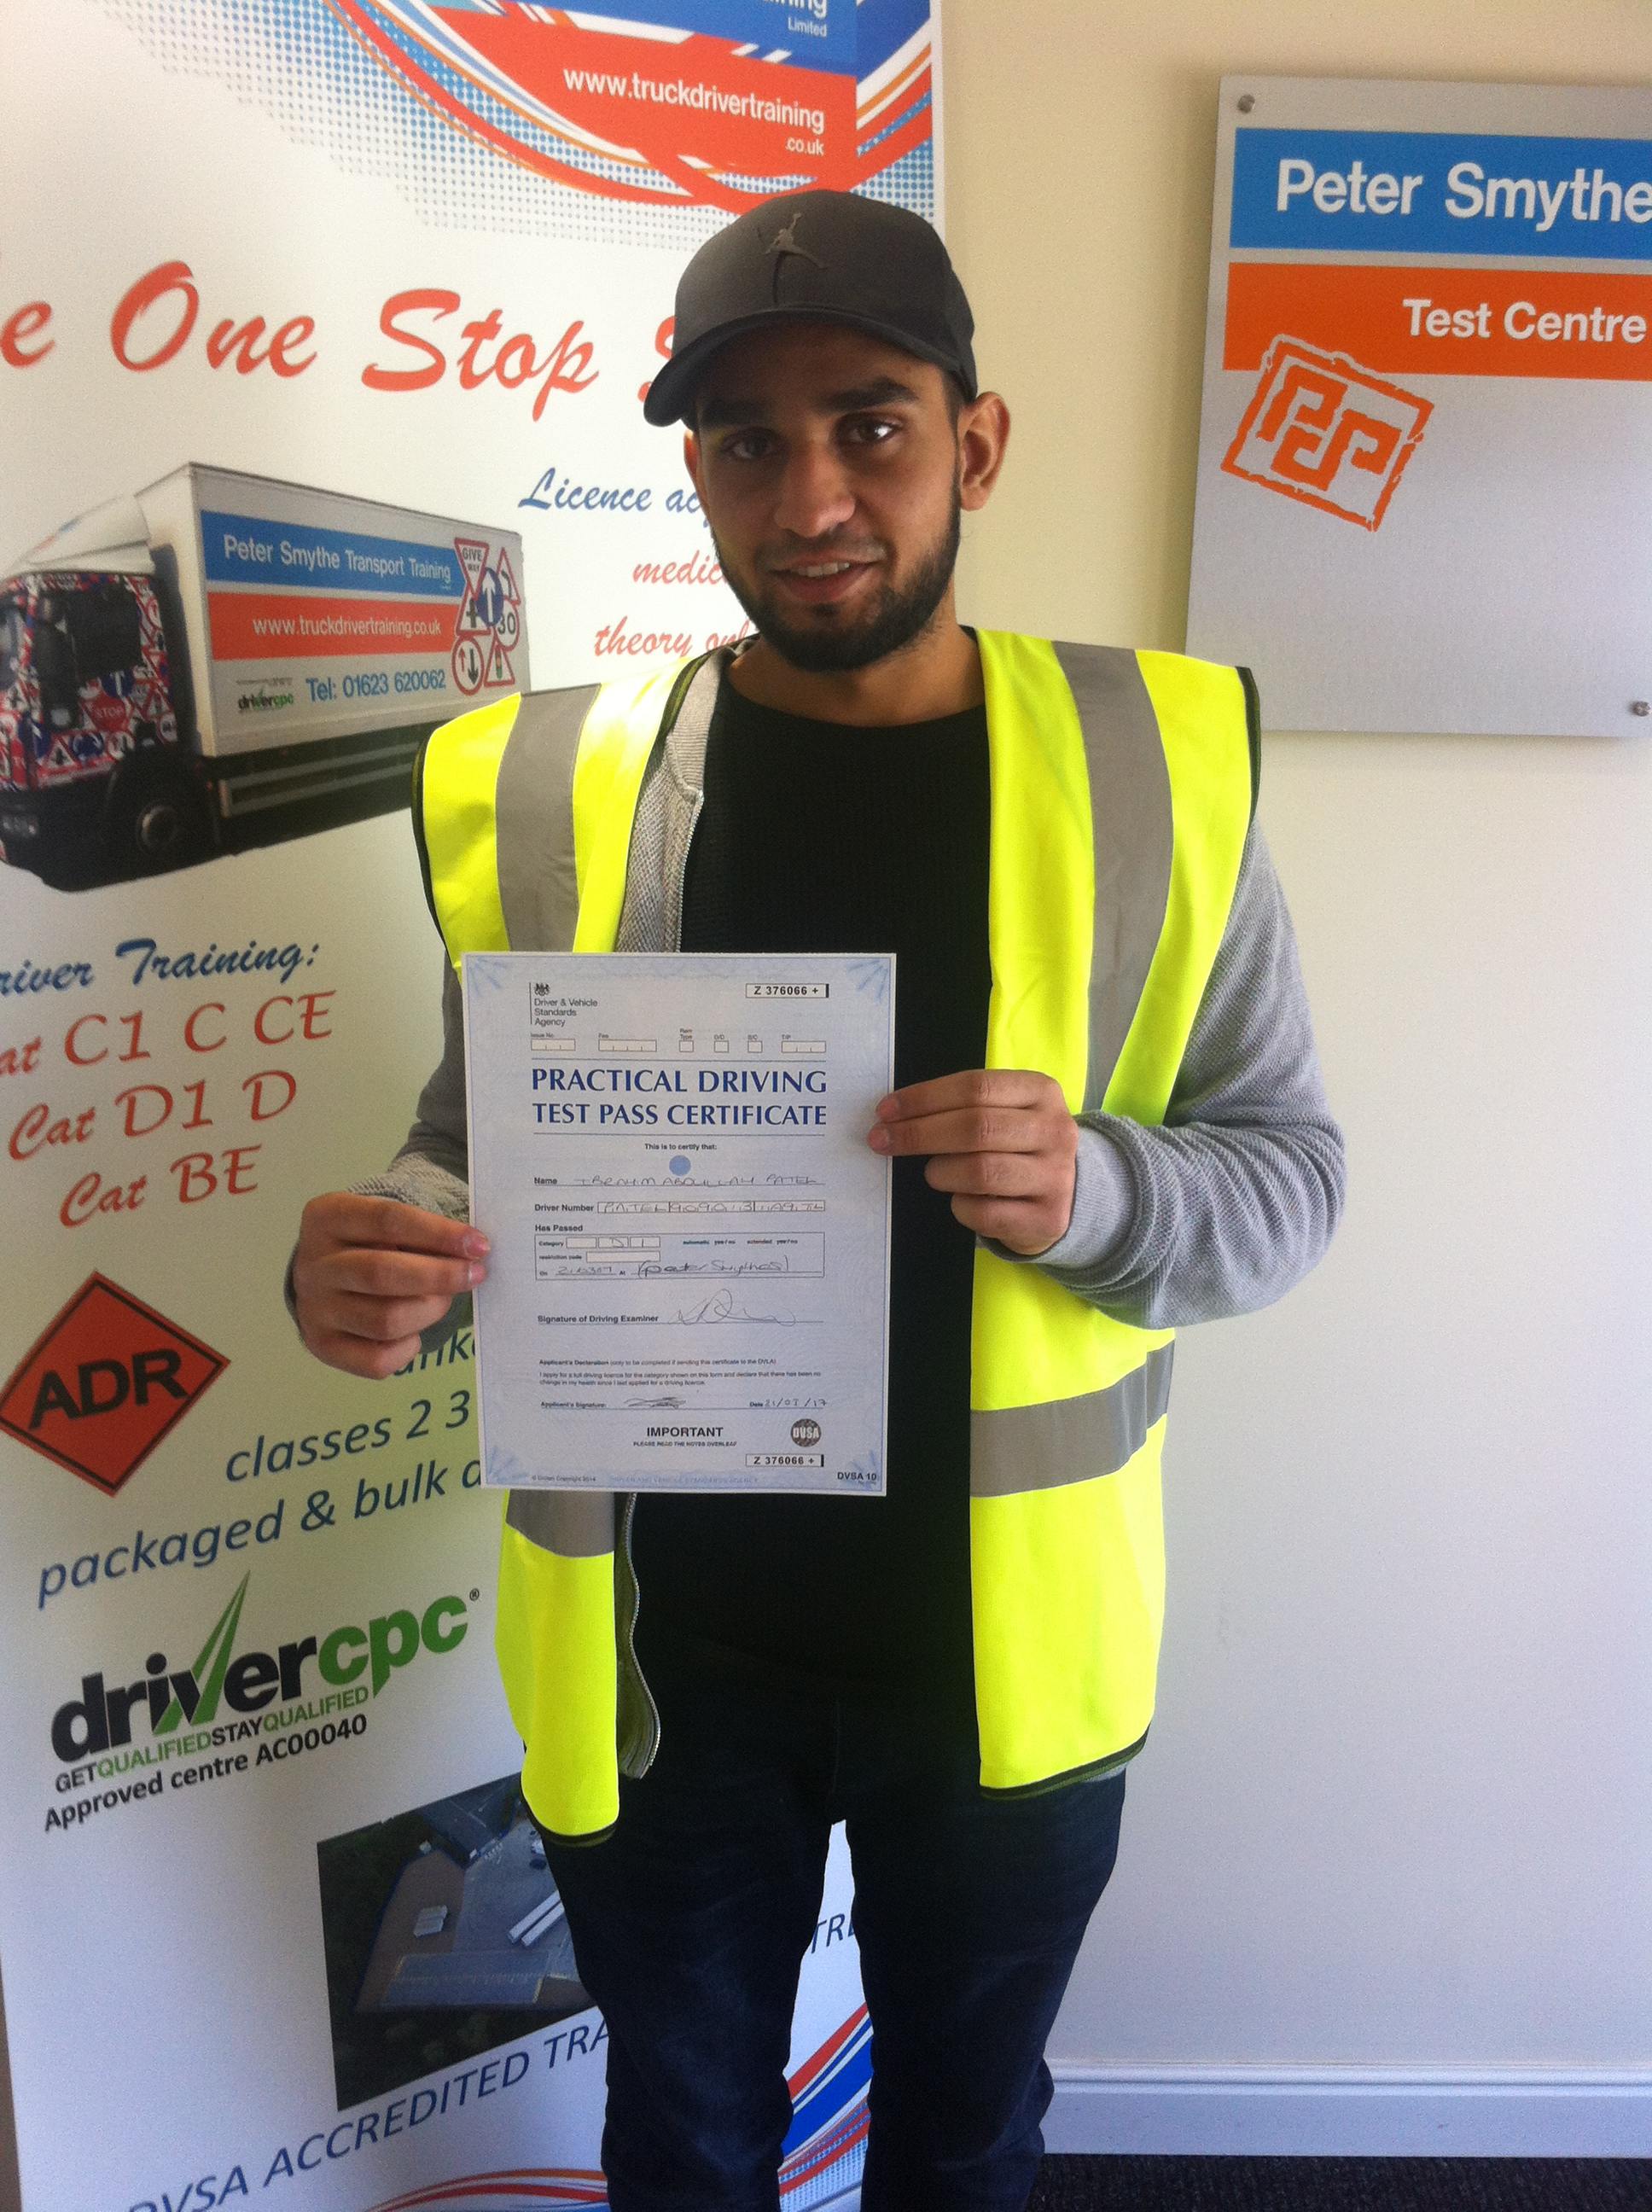 Ibrahim Patel from Leicester PASSED CAT D1